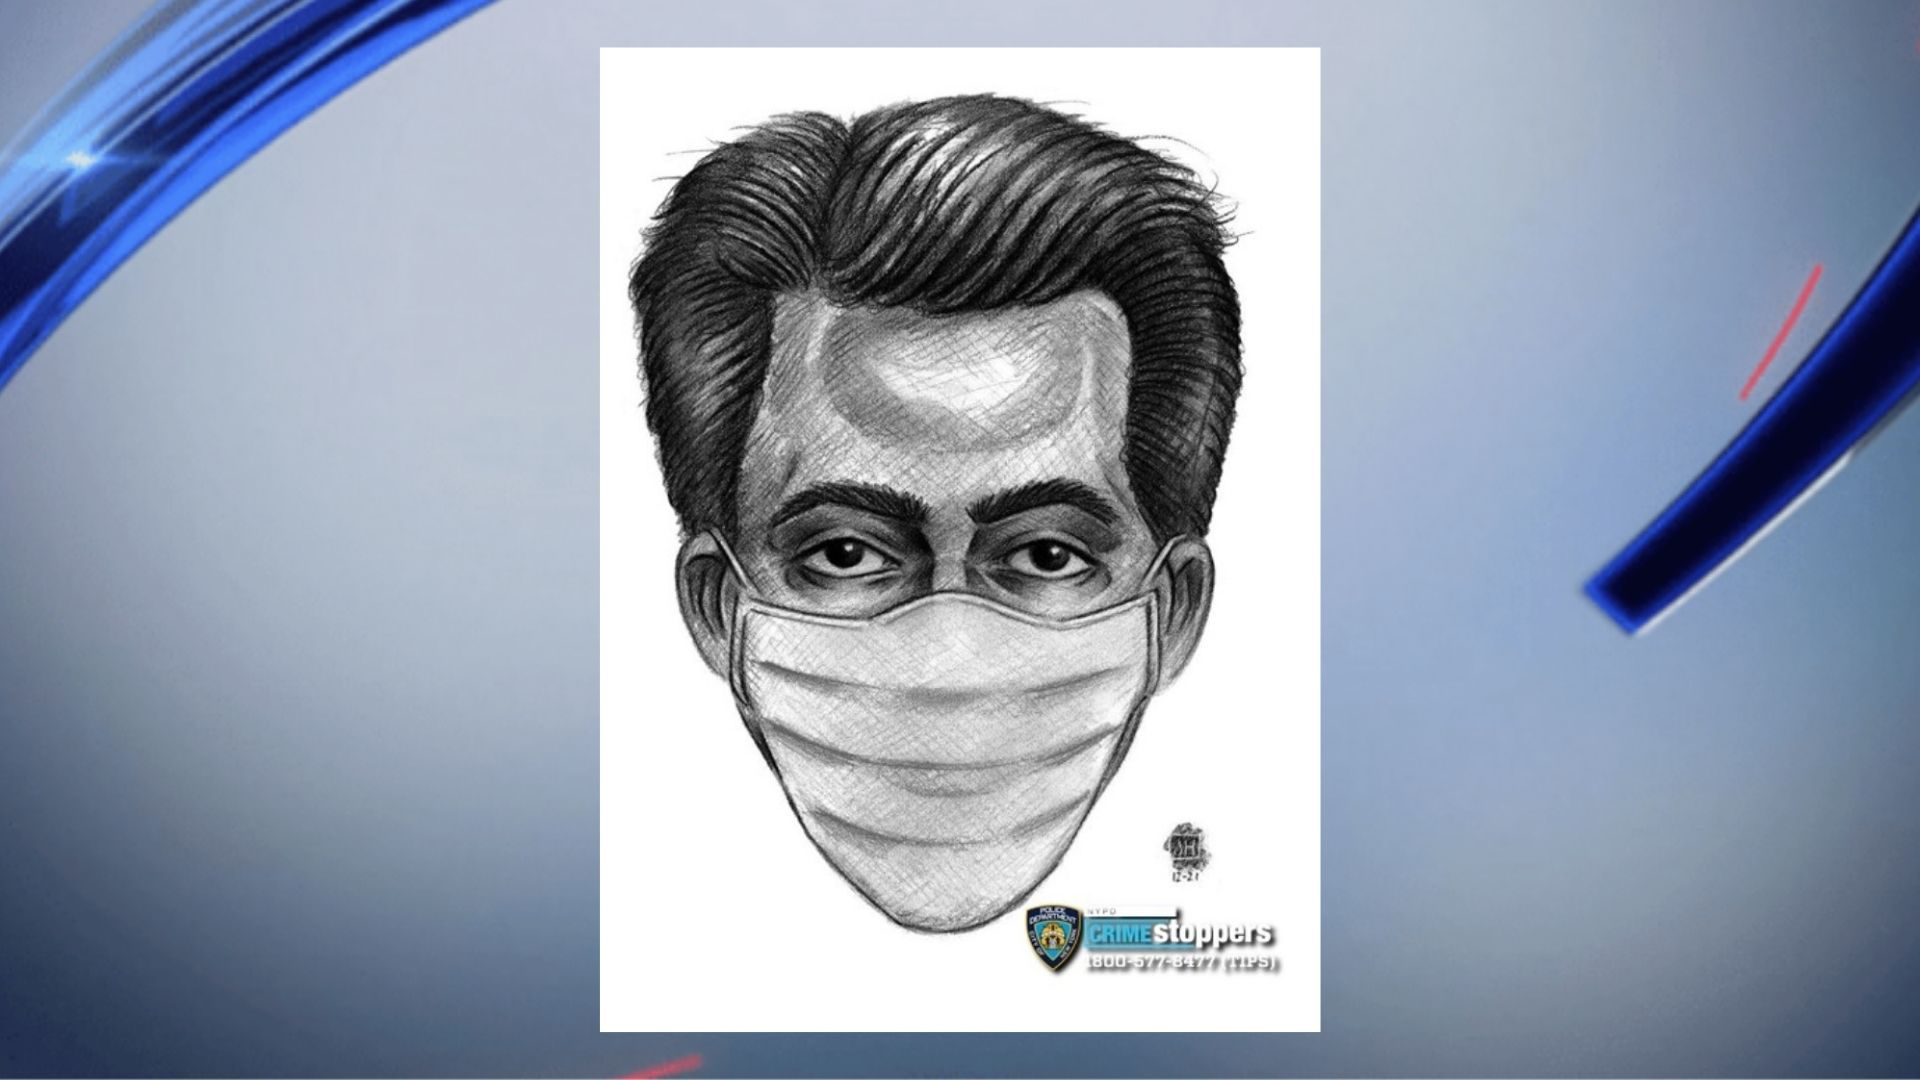 Police sketch of a man accused of groping a woman by a park in Staten Island on March 26, 2021, according to police. (NYPD)